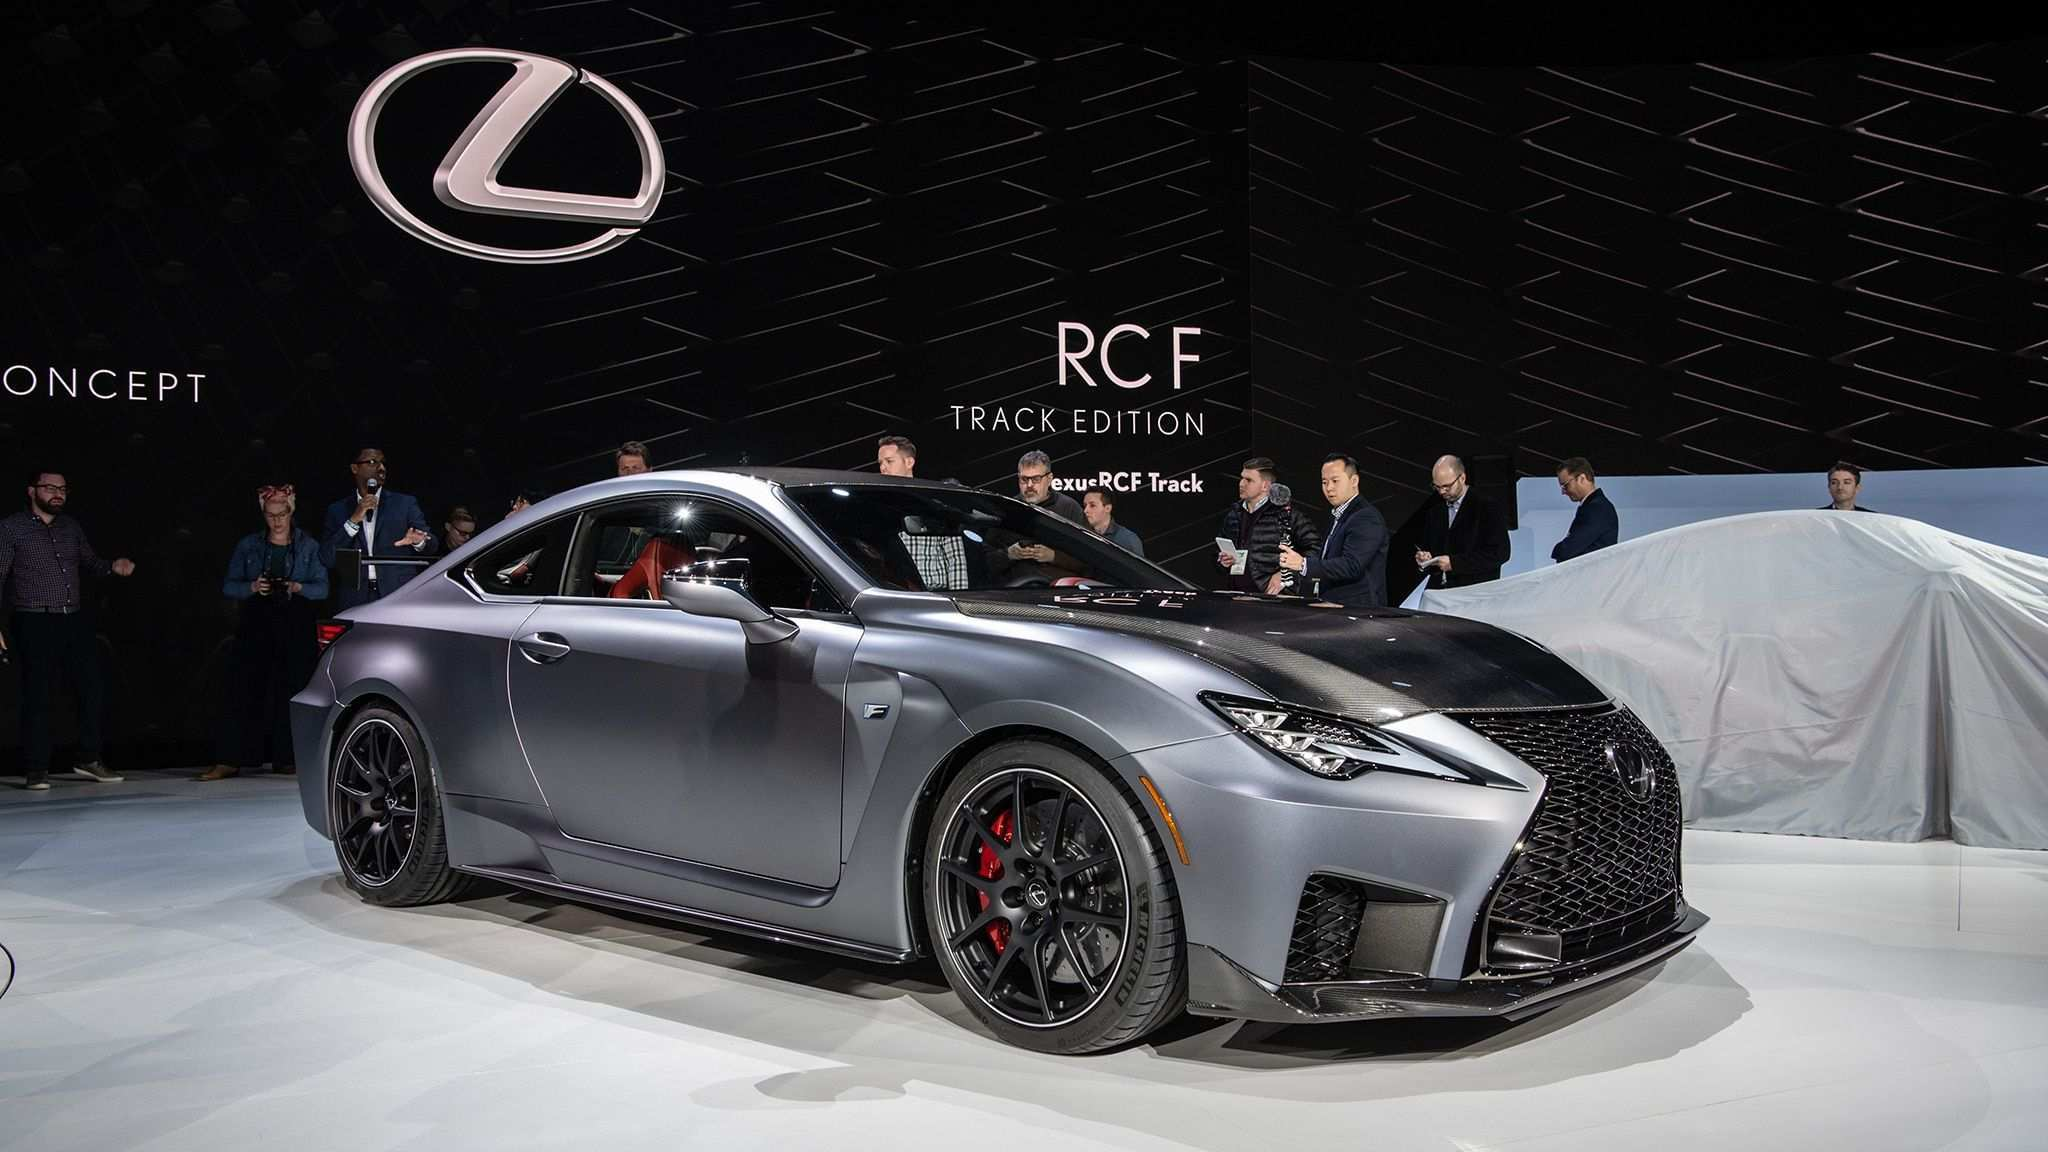 21 Gallery of Are The 2020 Lexus Out Yet Exterior and Interior for Are The 2020 Lexus Out Yet